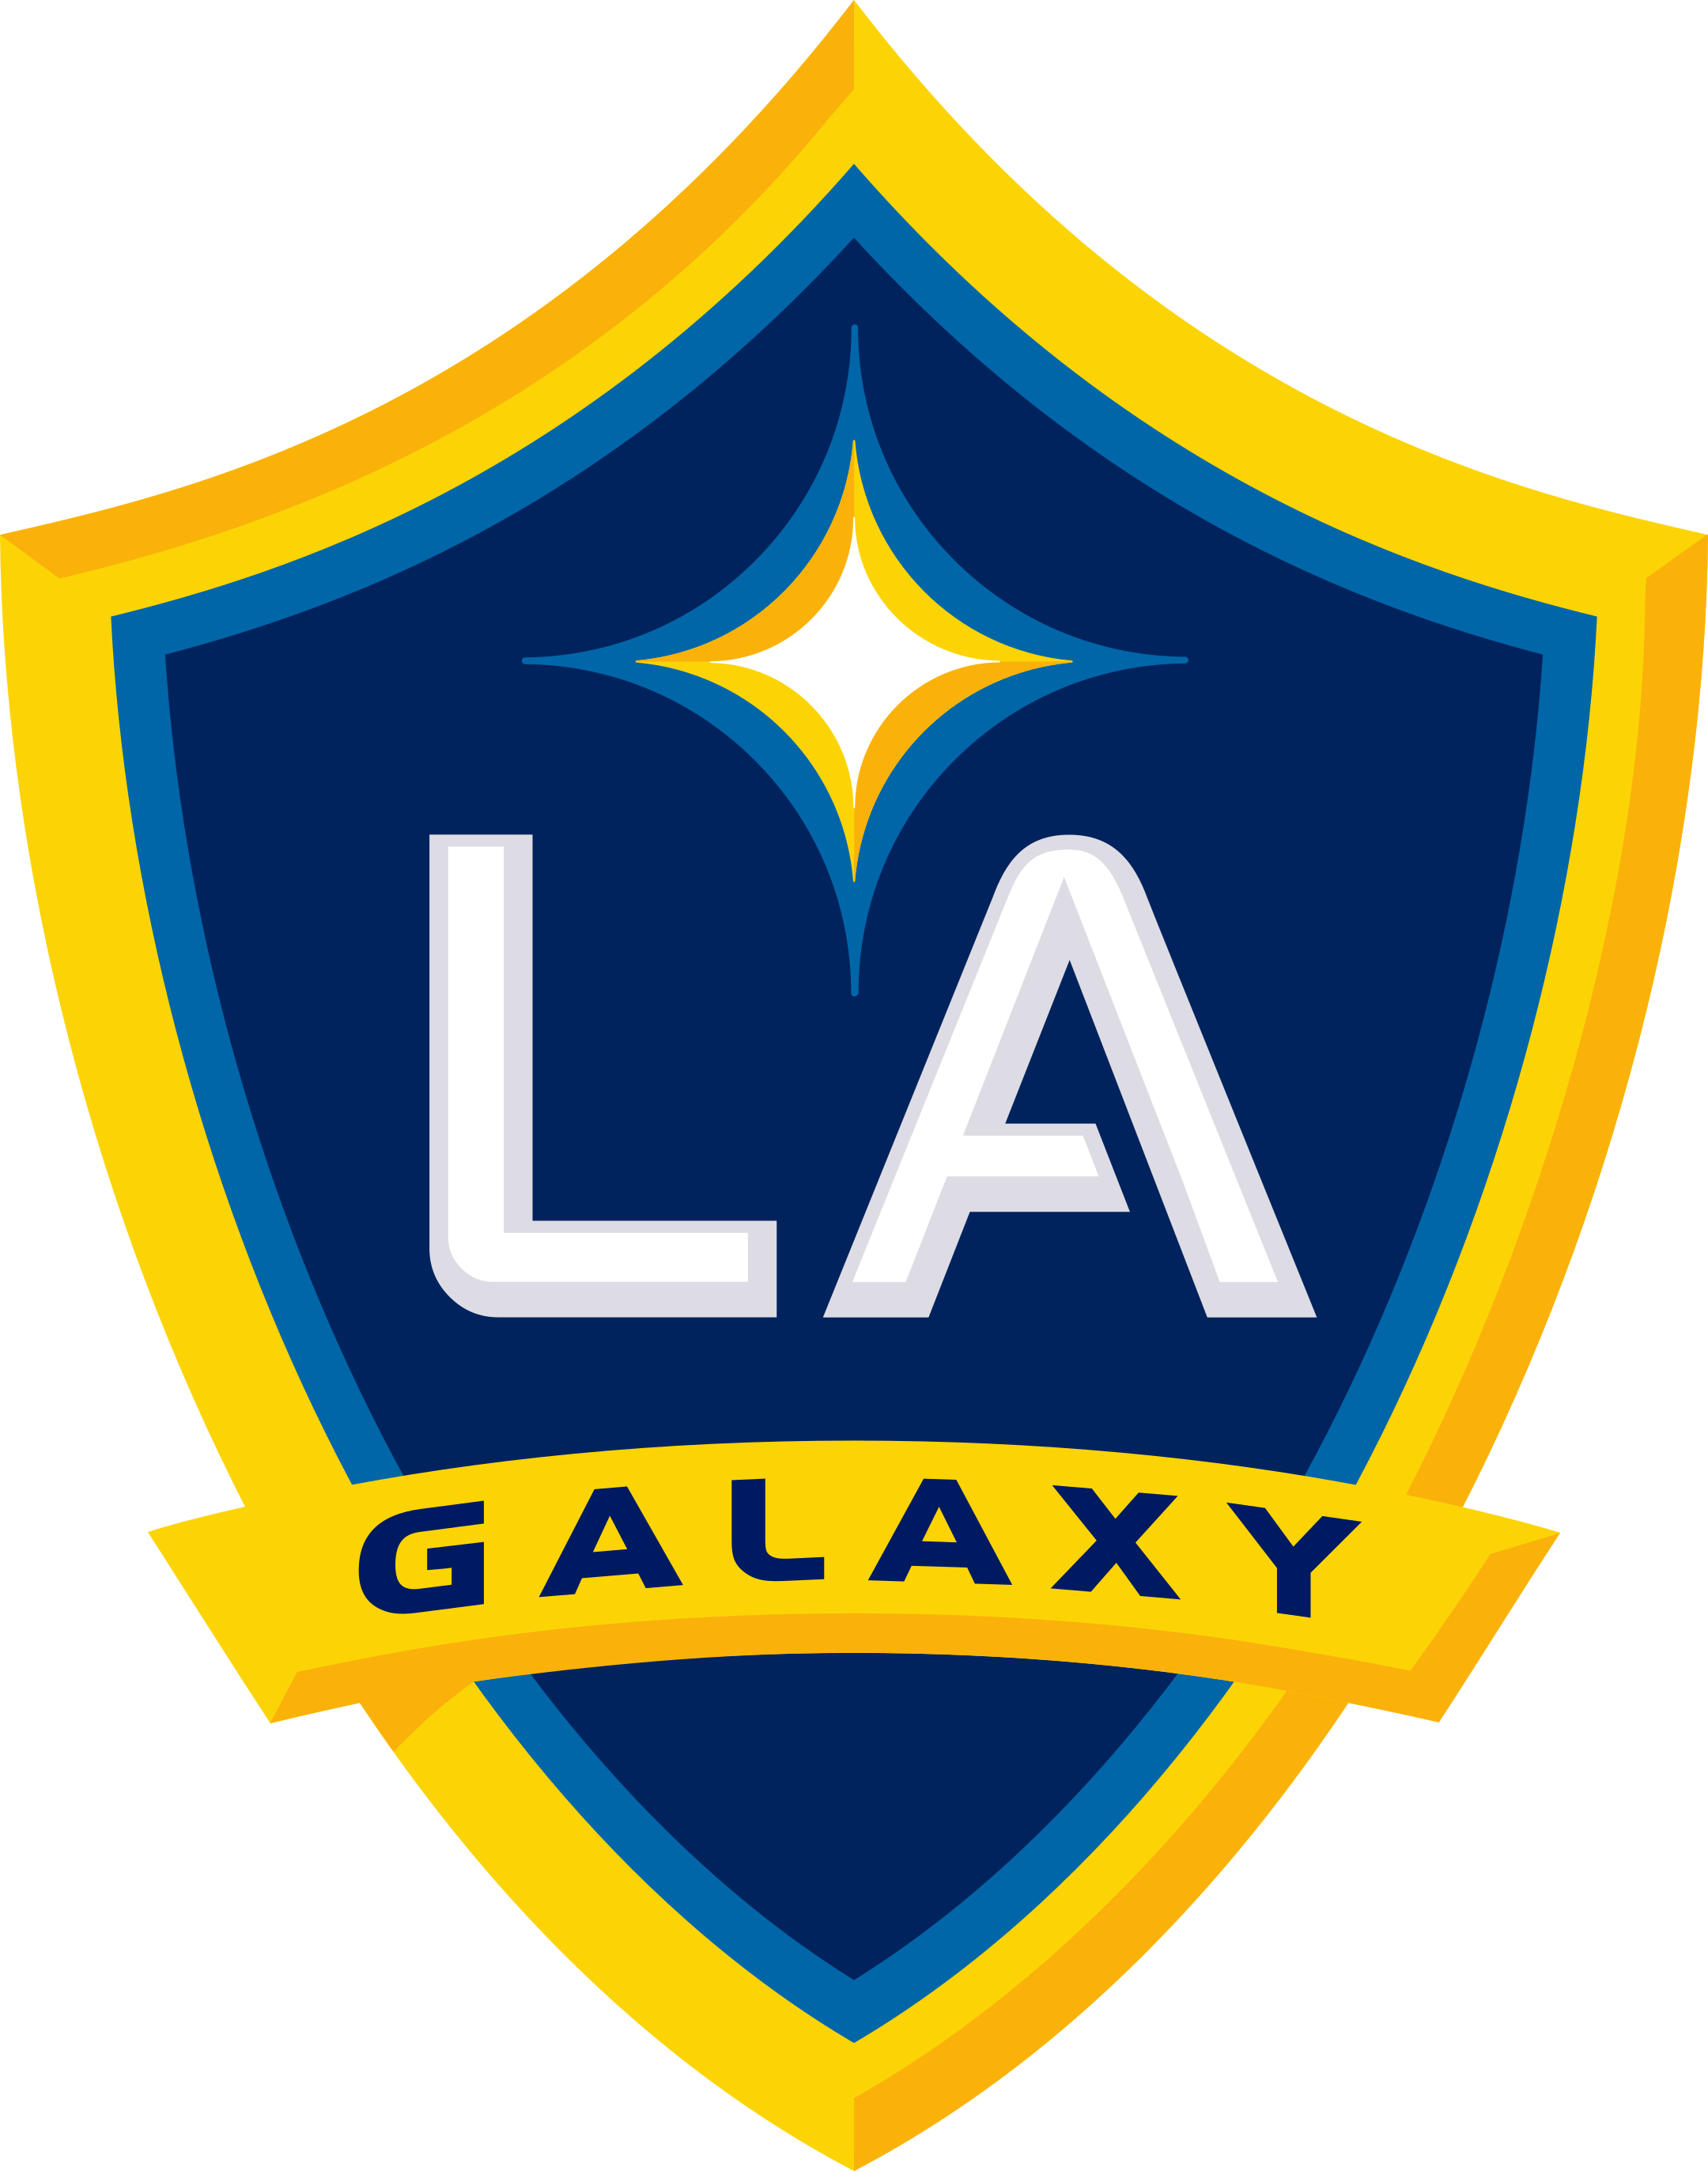 los angeles galaxy logo 1 - LA Galaxy Logo